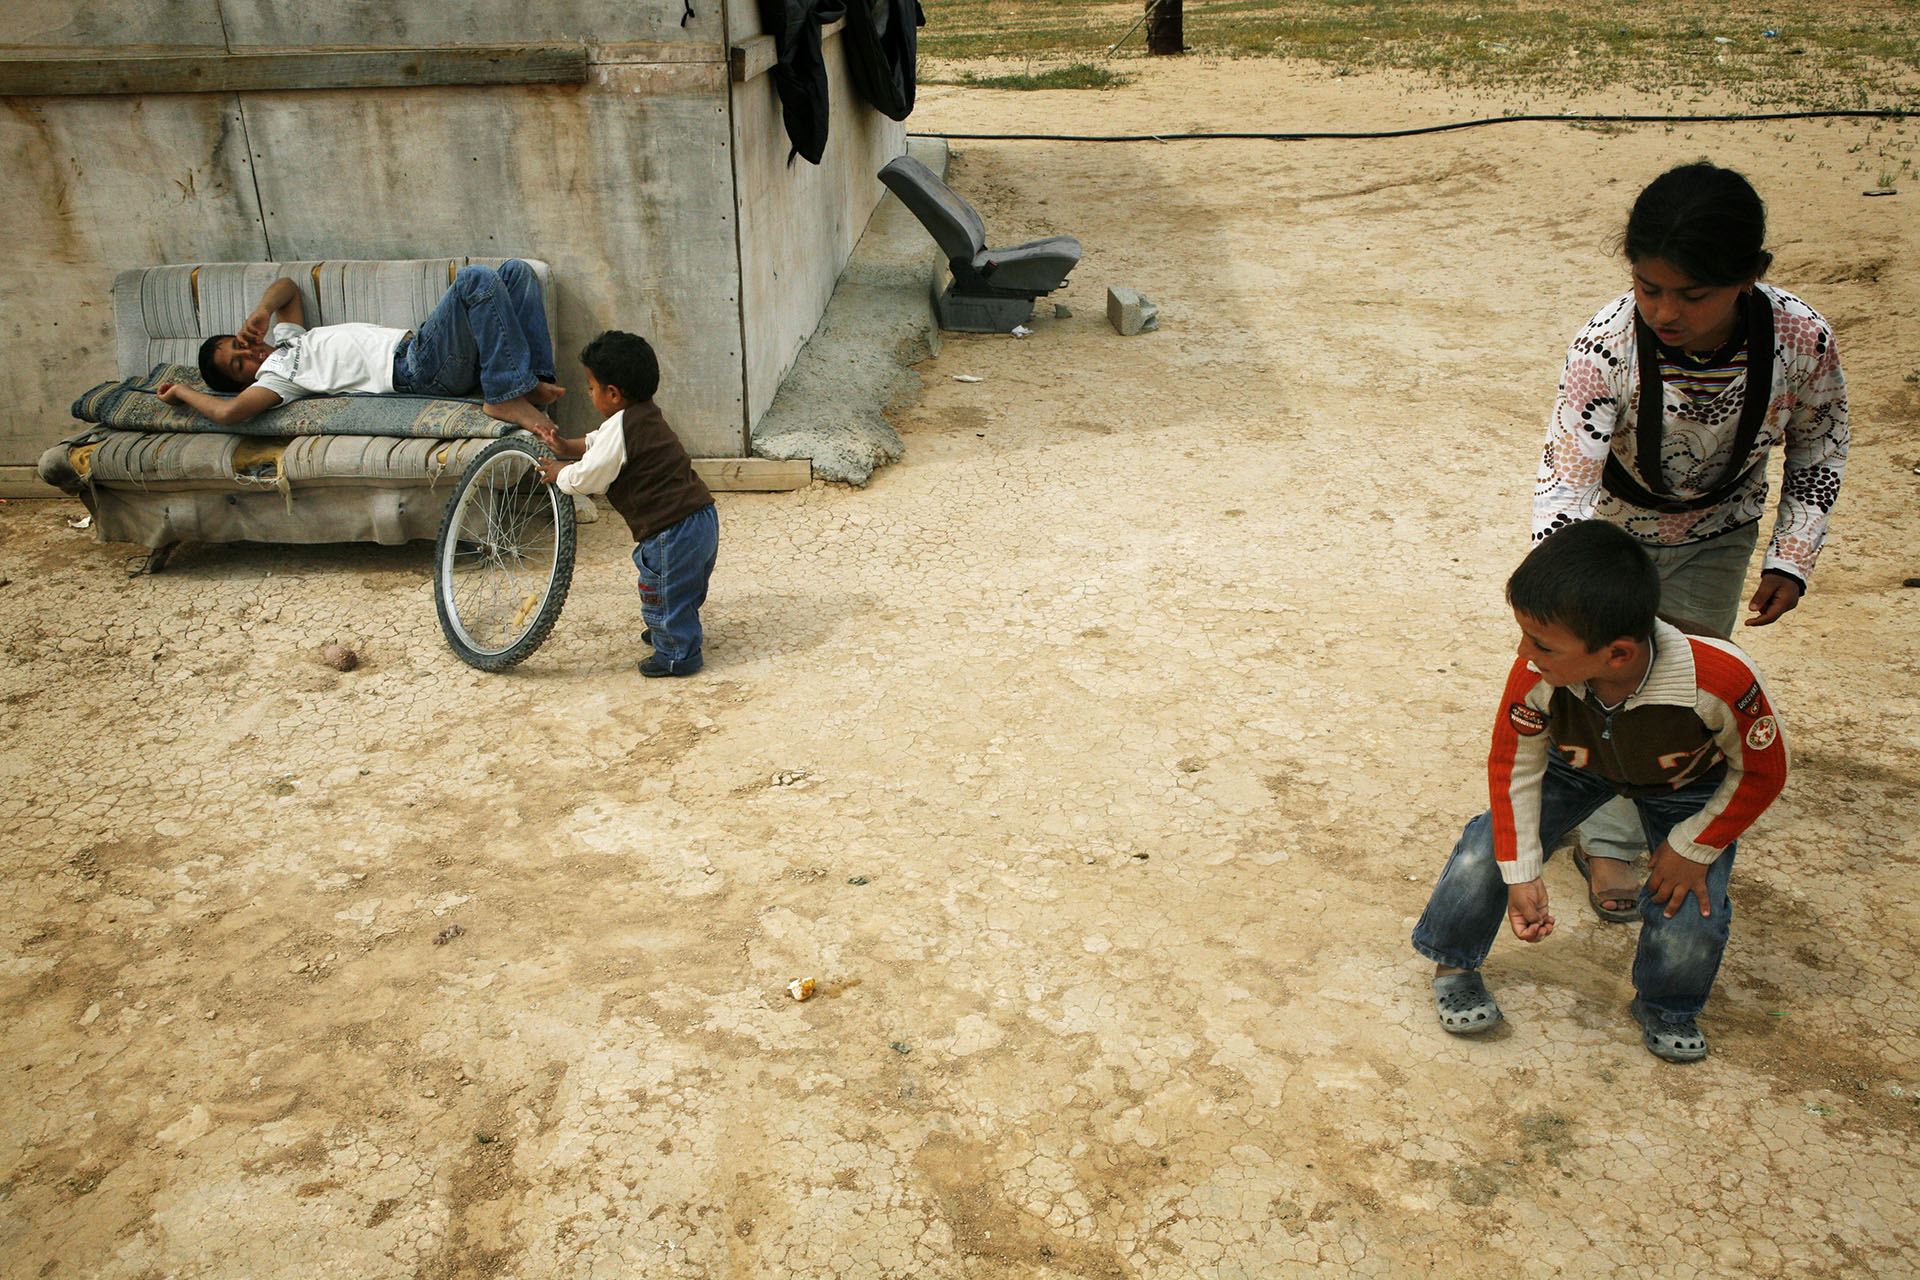 Azeez's children play with marbles outside their home. Al Araqib April, 2009